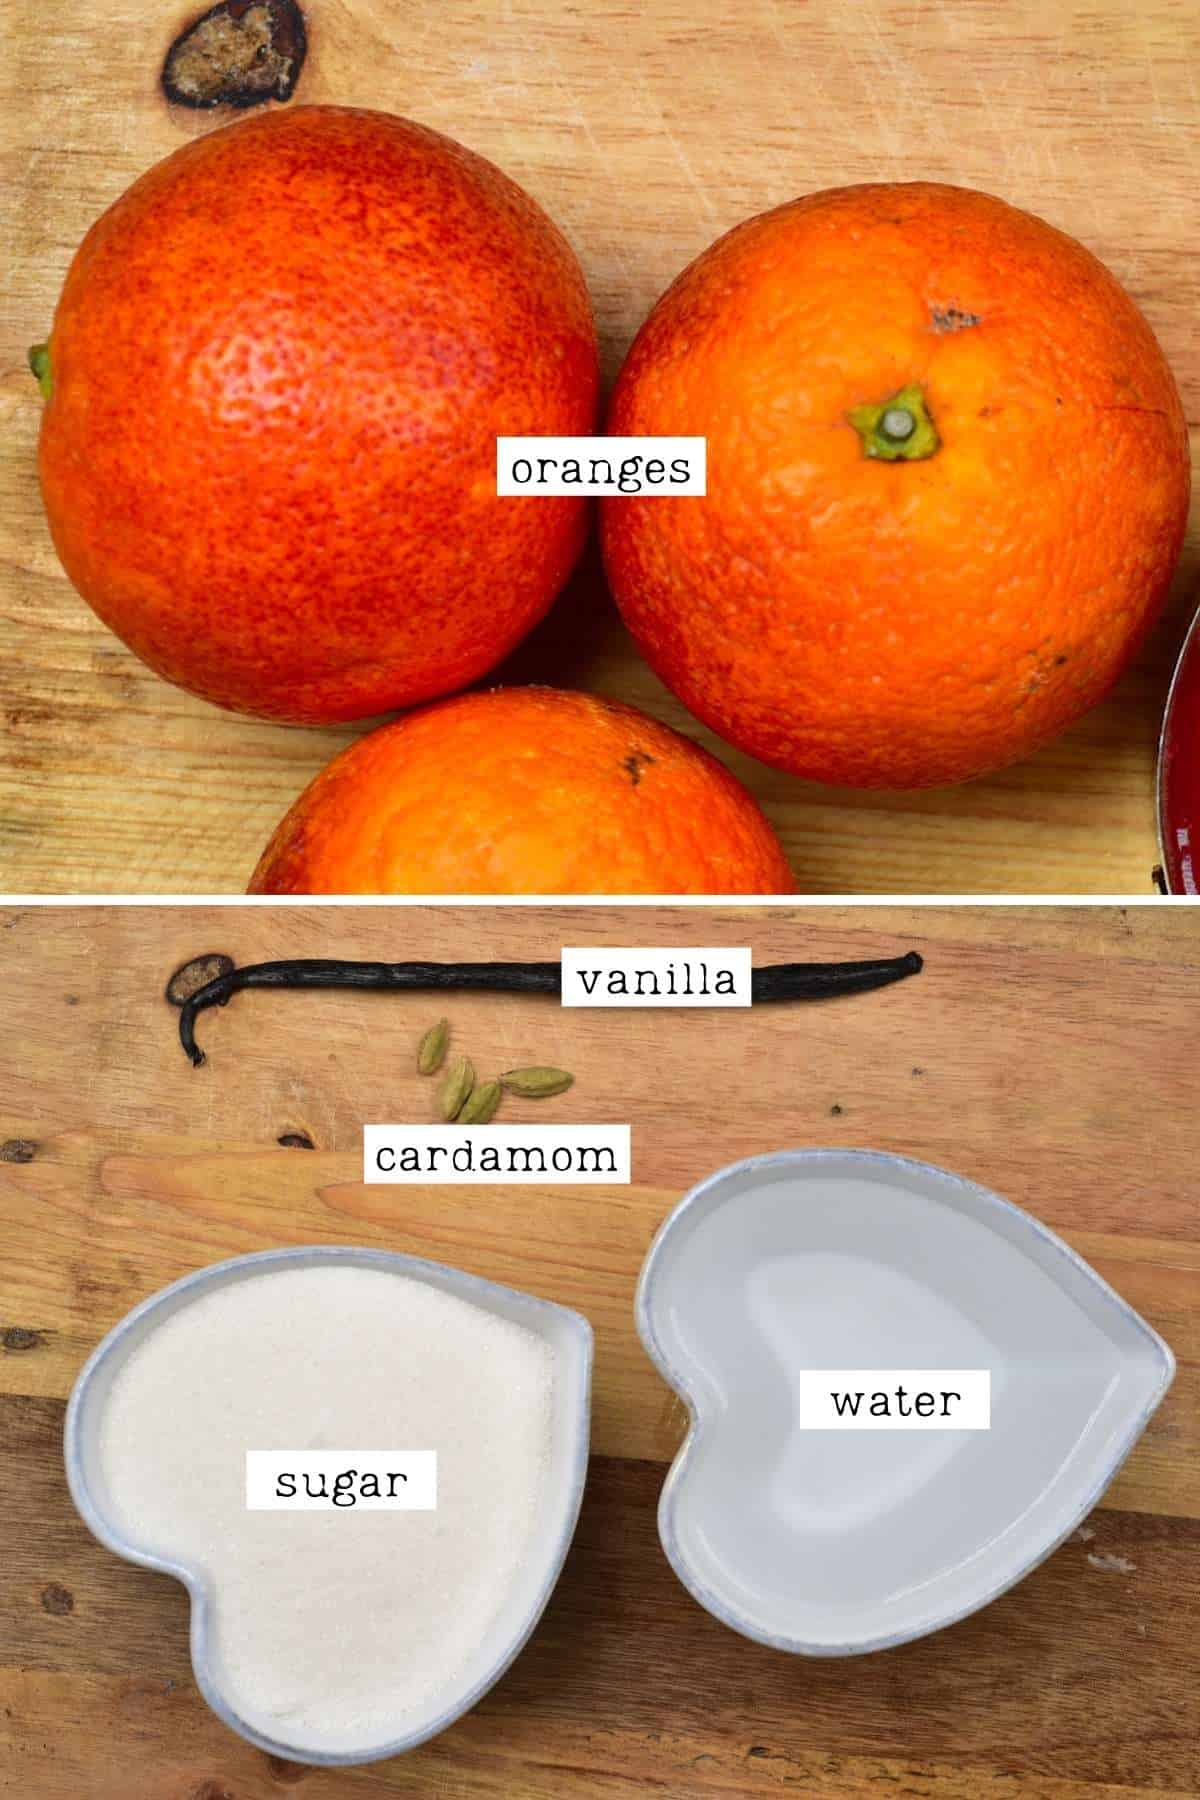 Ingrdients for candied oranges